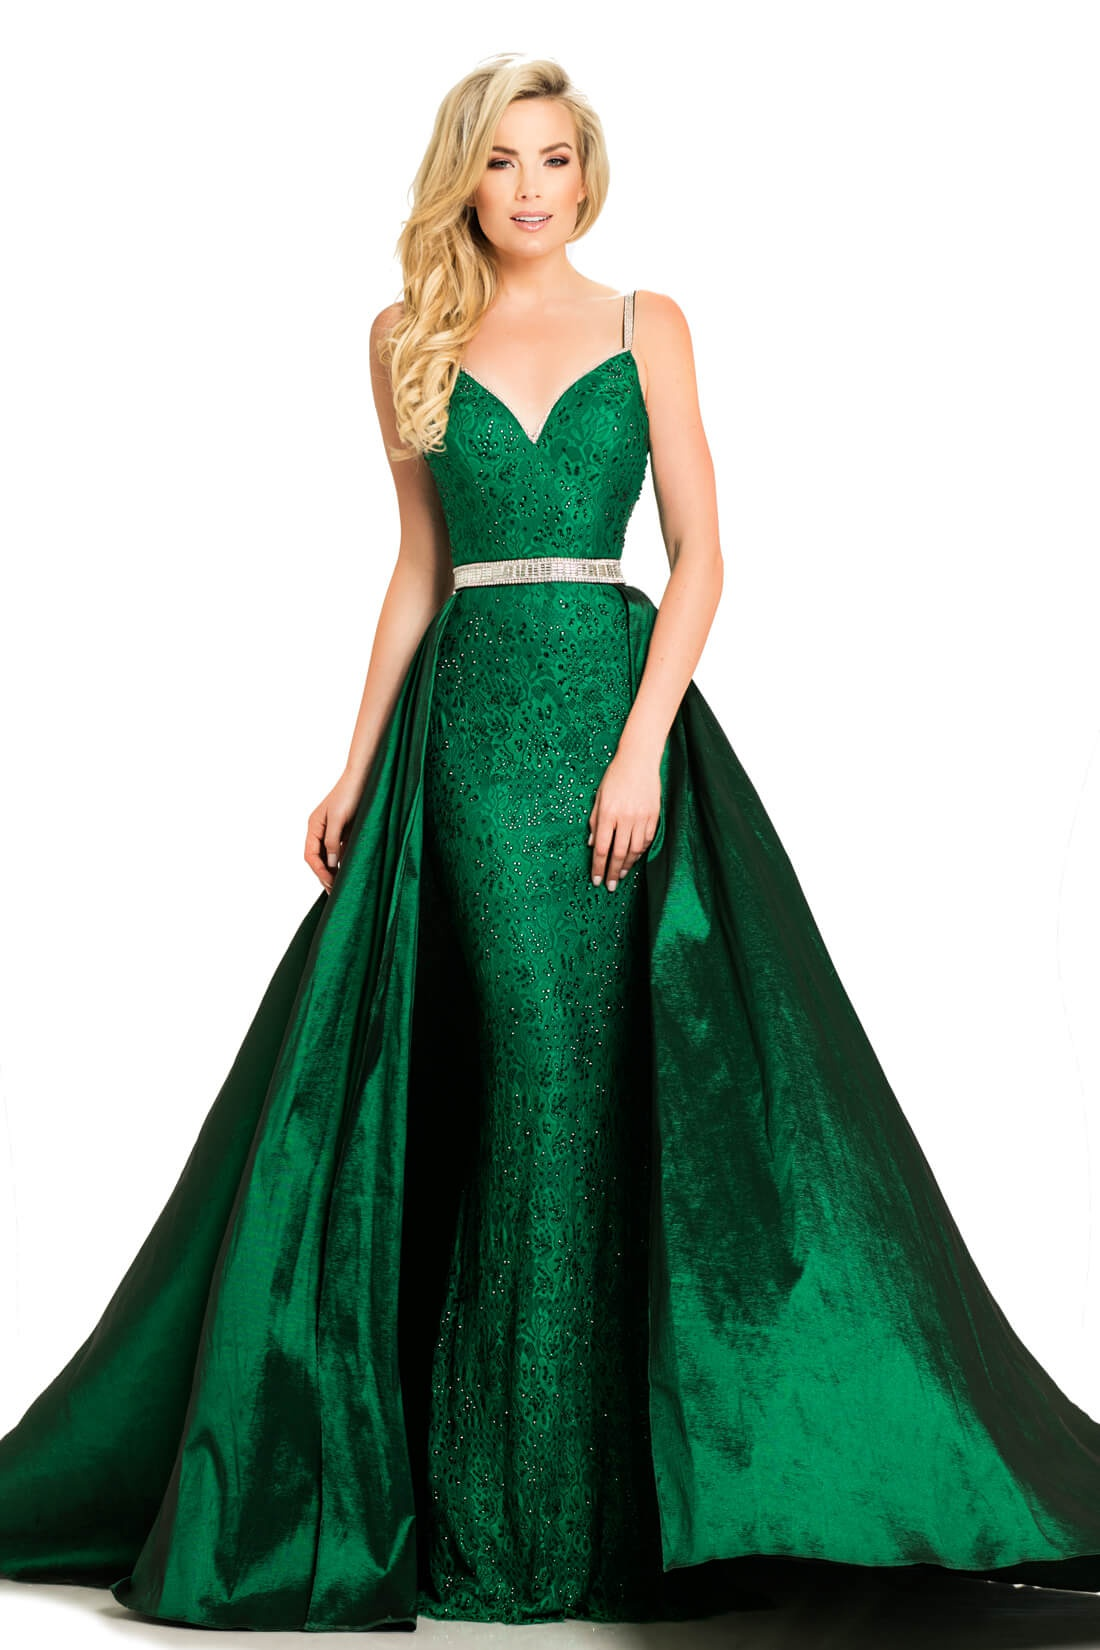 Style 7242 Johnathan Kayne Green Size 8 Tall Height Lace Train Dress on Queenly